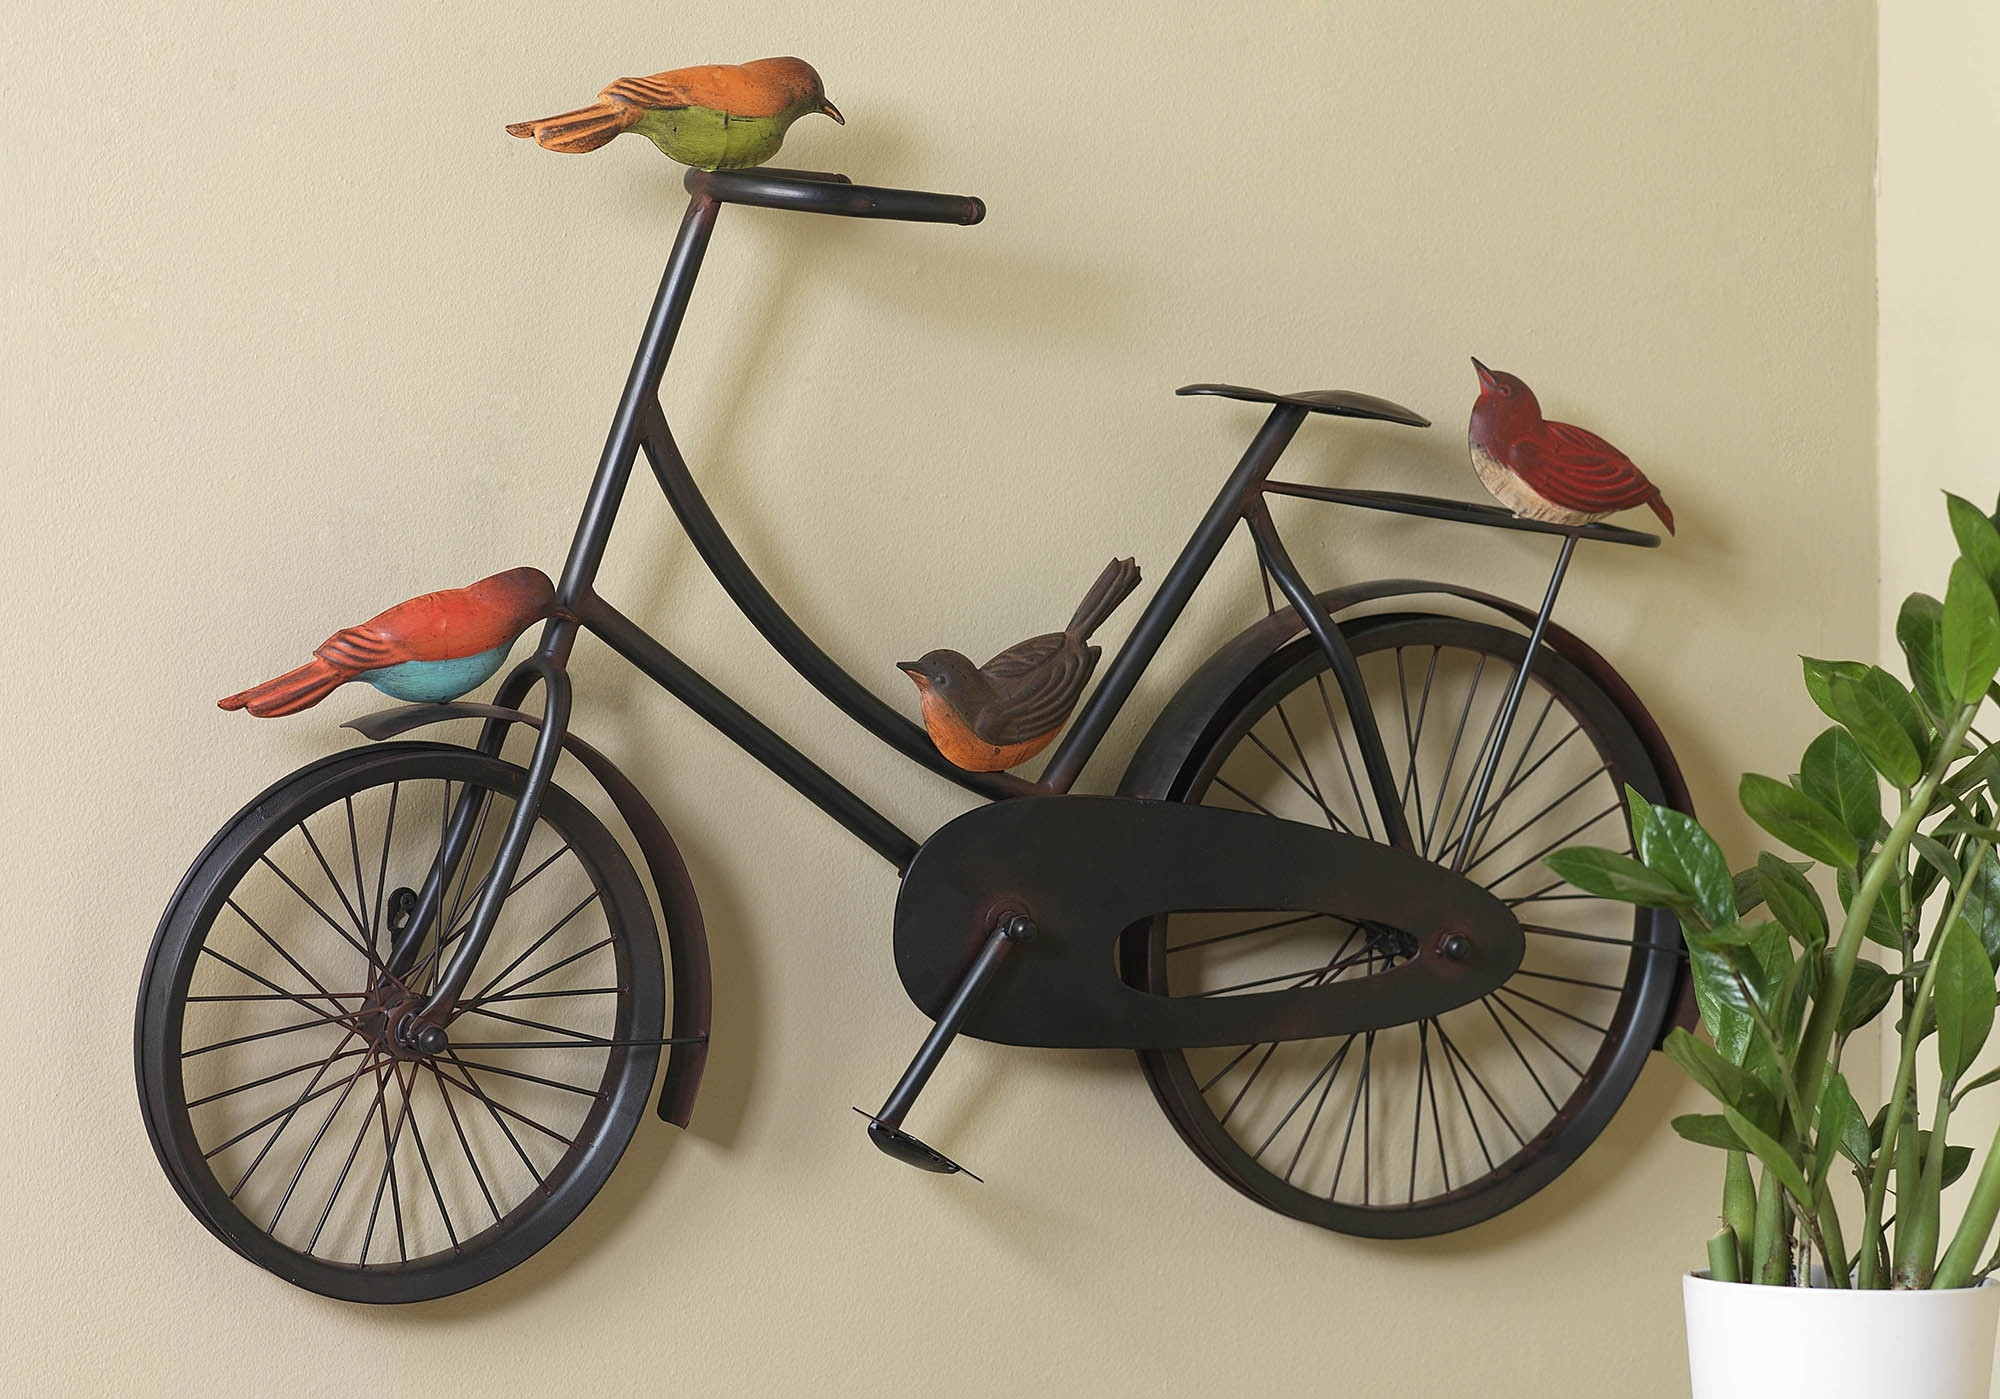 37 Bicycle Wall Art, Iron Bicycle Wall Art Black Wood Frame Fathers Within Most Up To Date Bicycle Wall Art (Gallery 8 of 20)